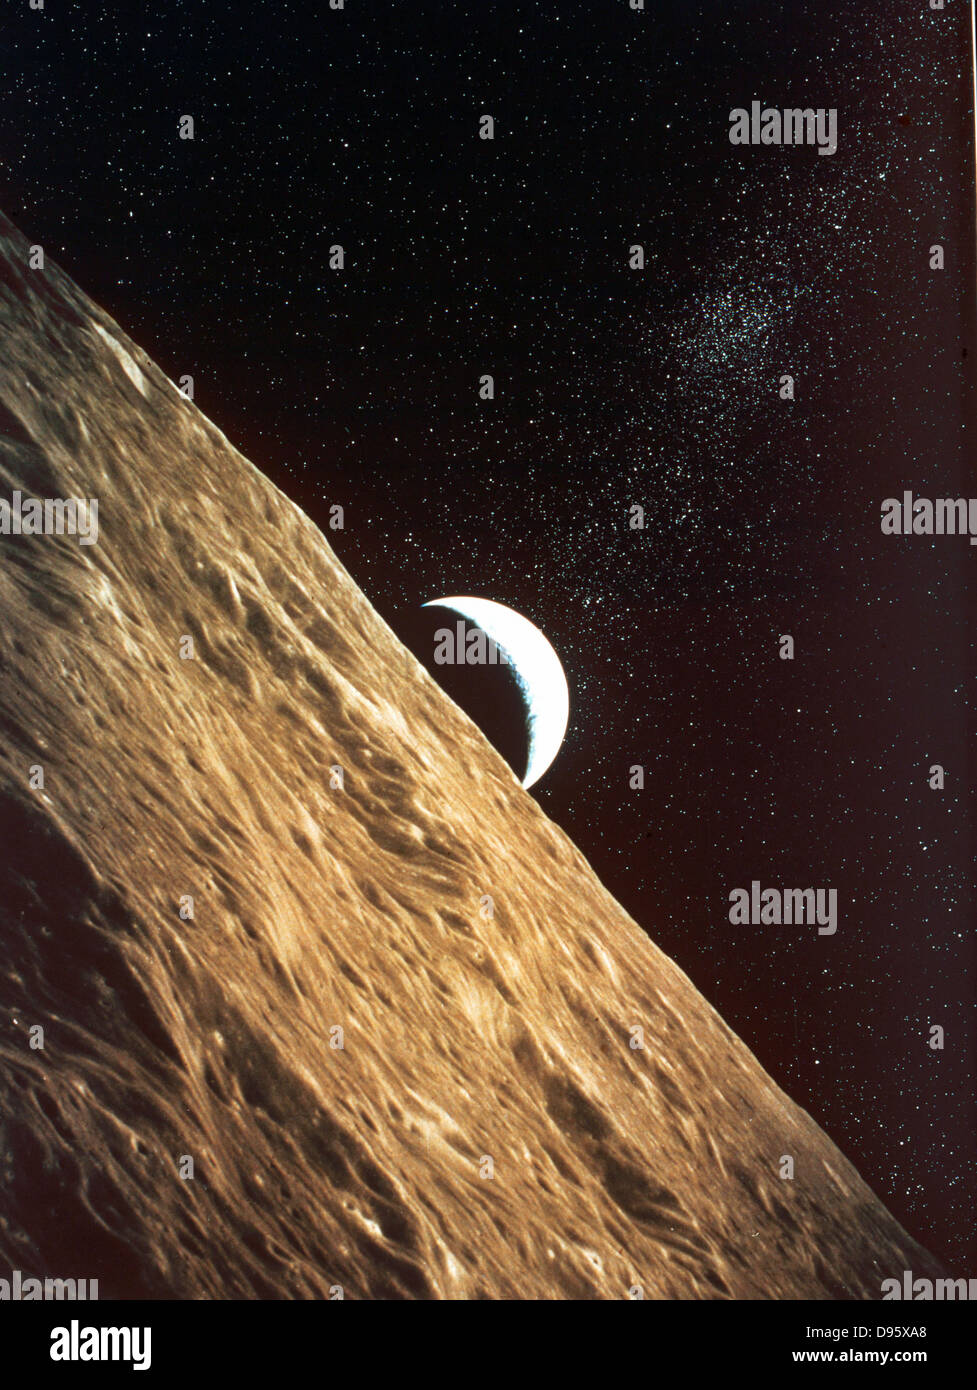 Earth rise seen from surface of Moon:  Apollo Mission 1969. NASA photograph - Stock Image